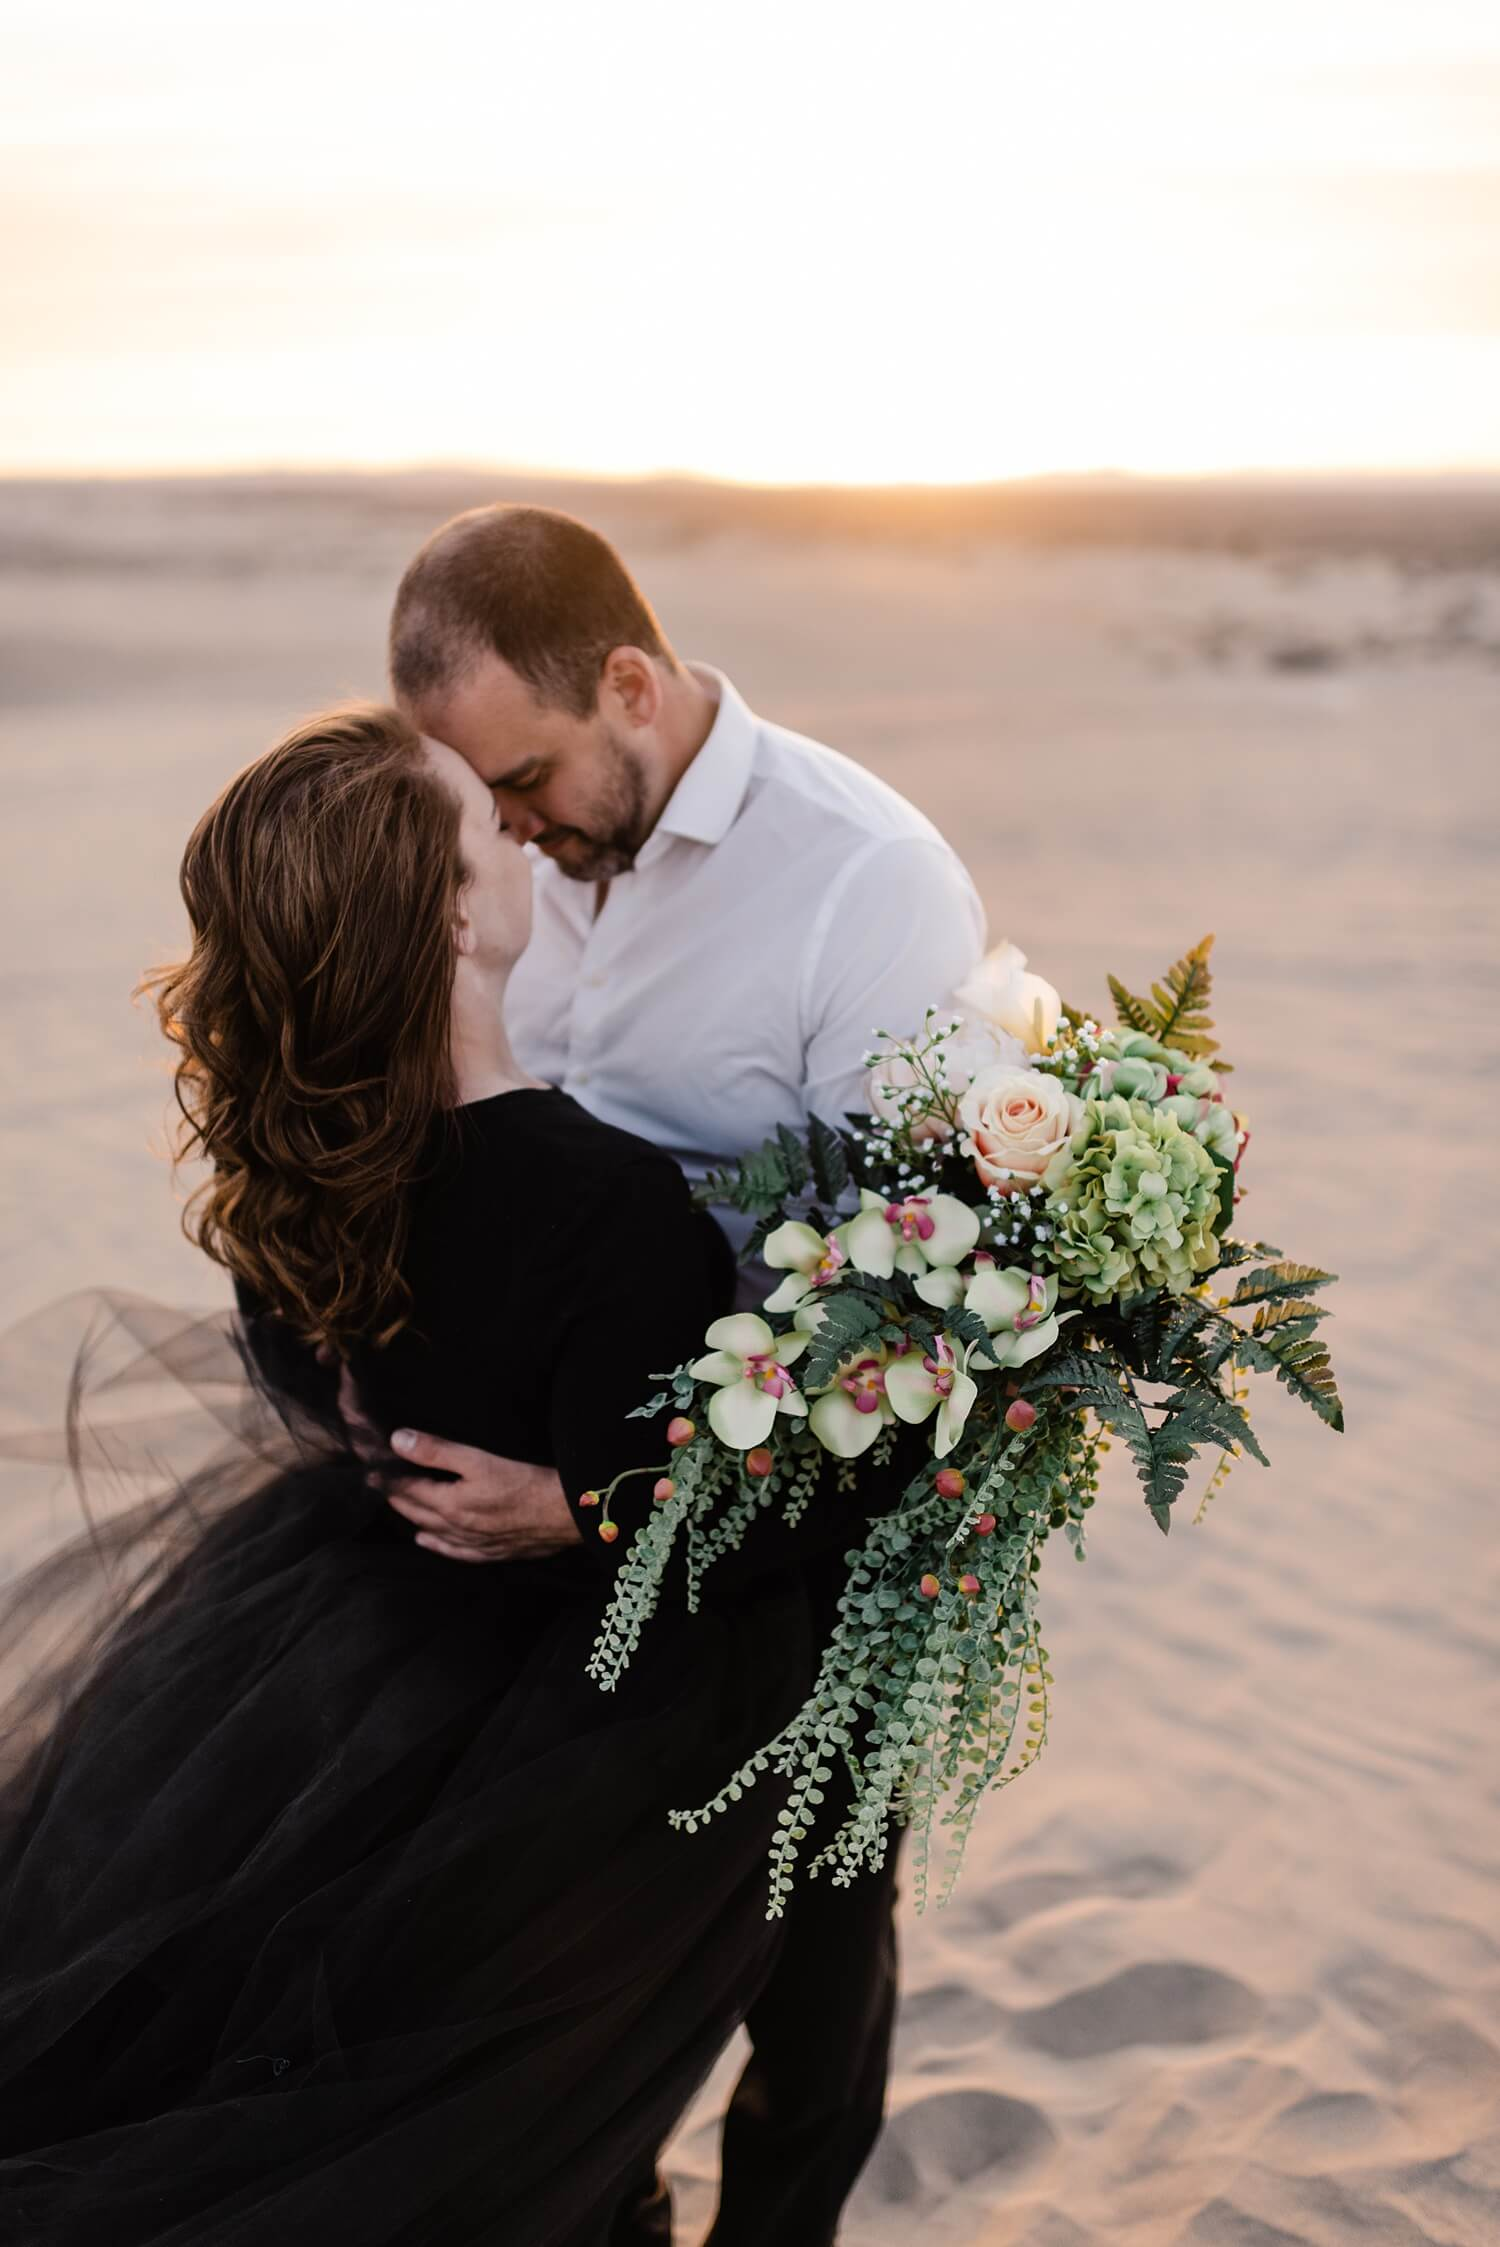 Christmas Valley Sand Dunes, Adventure Elopement Photography, Oregon, Pacific Northwest, Desert elopement, black wedding dress